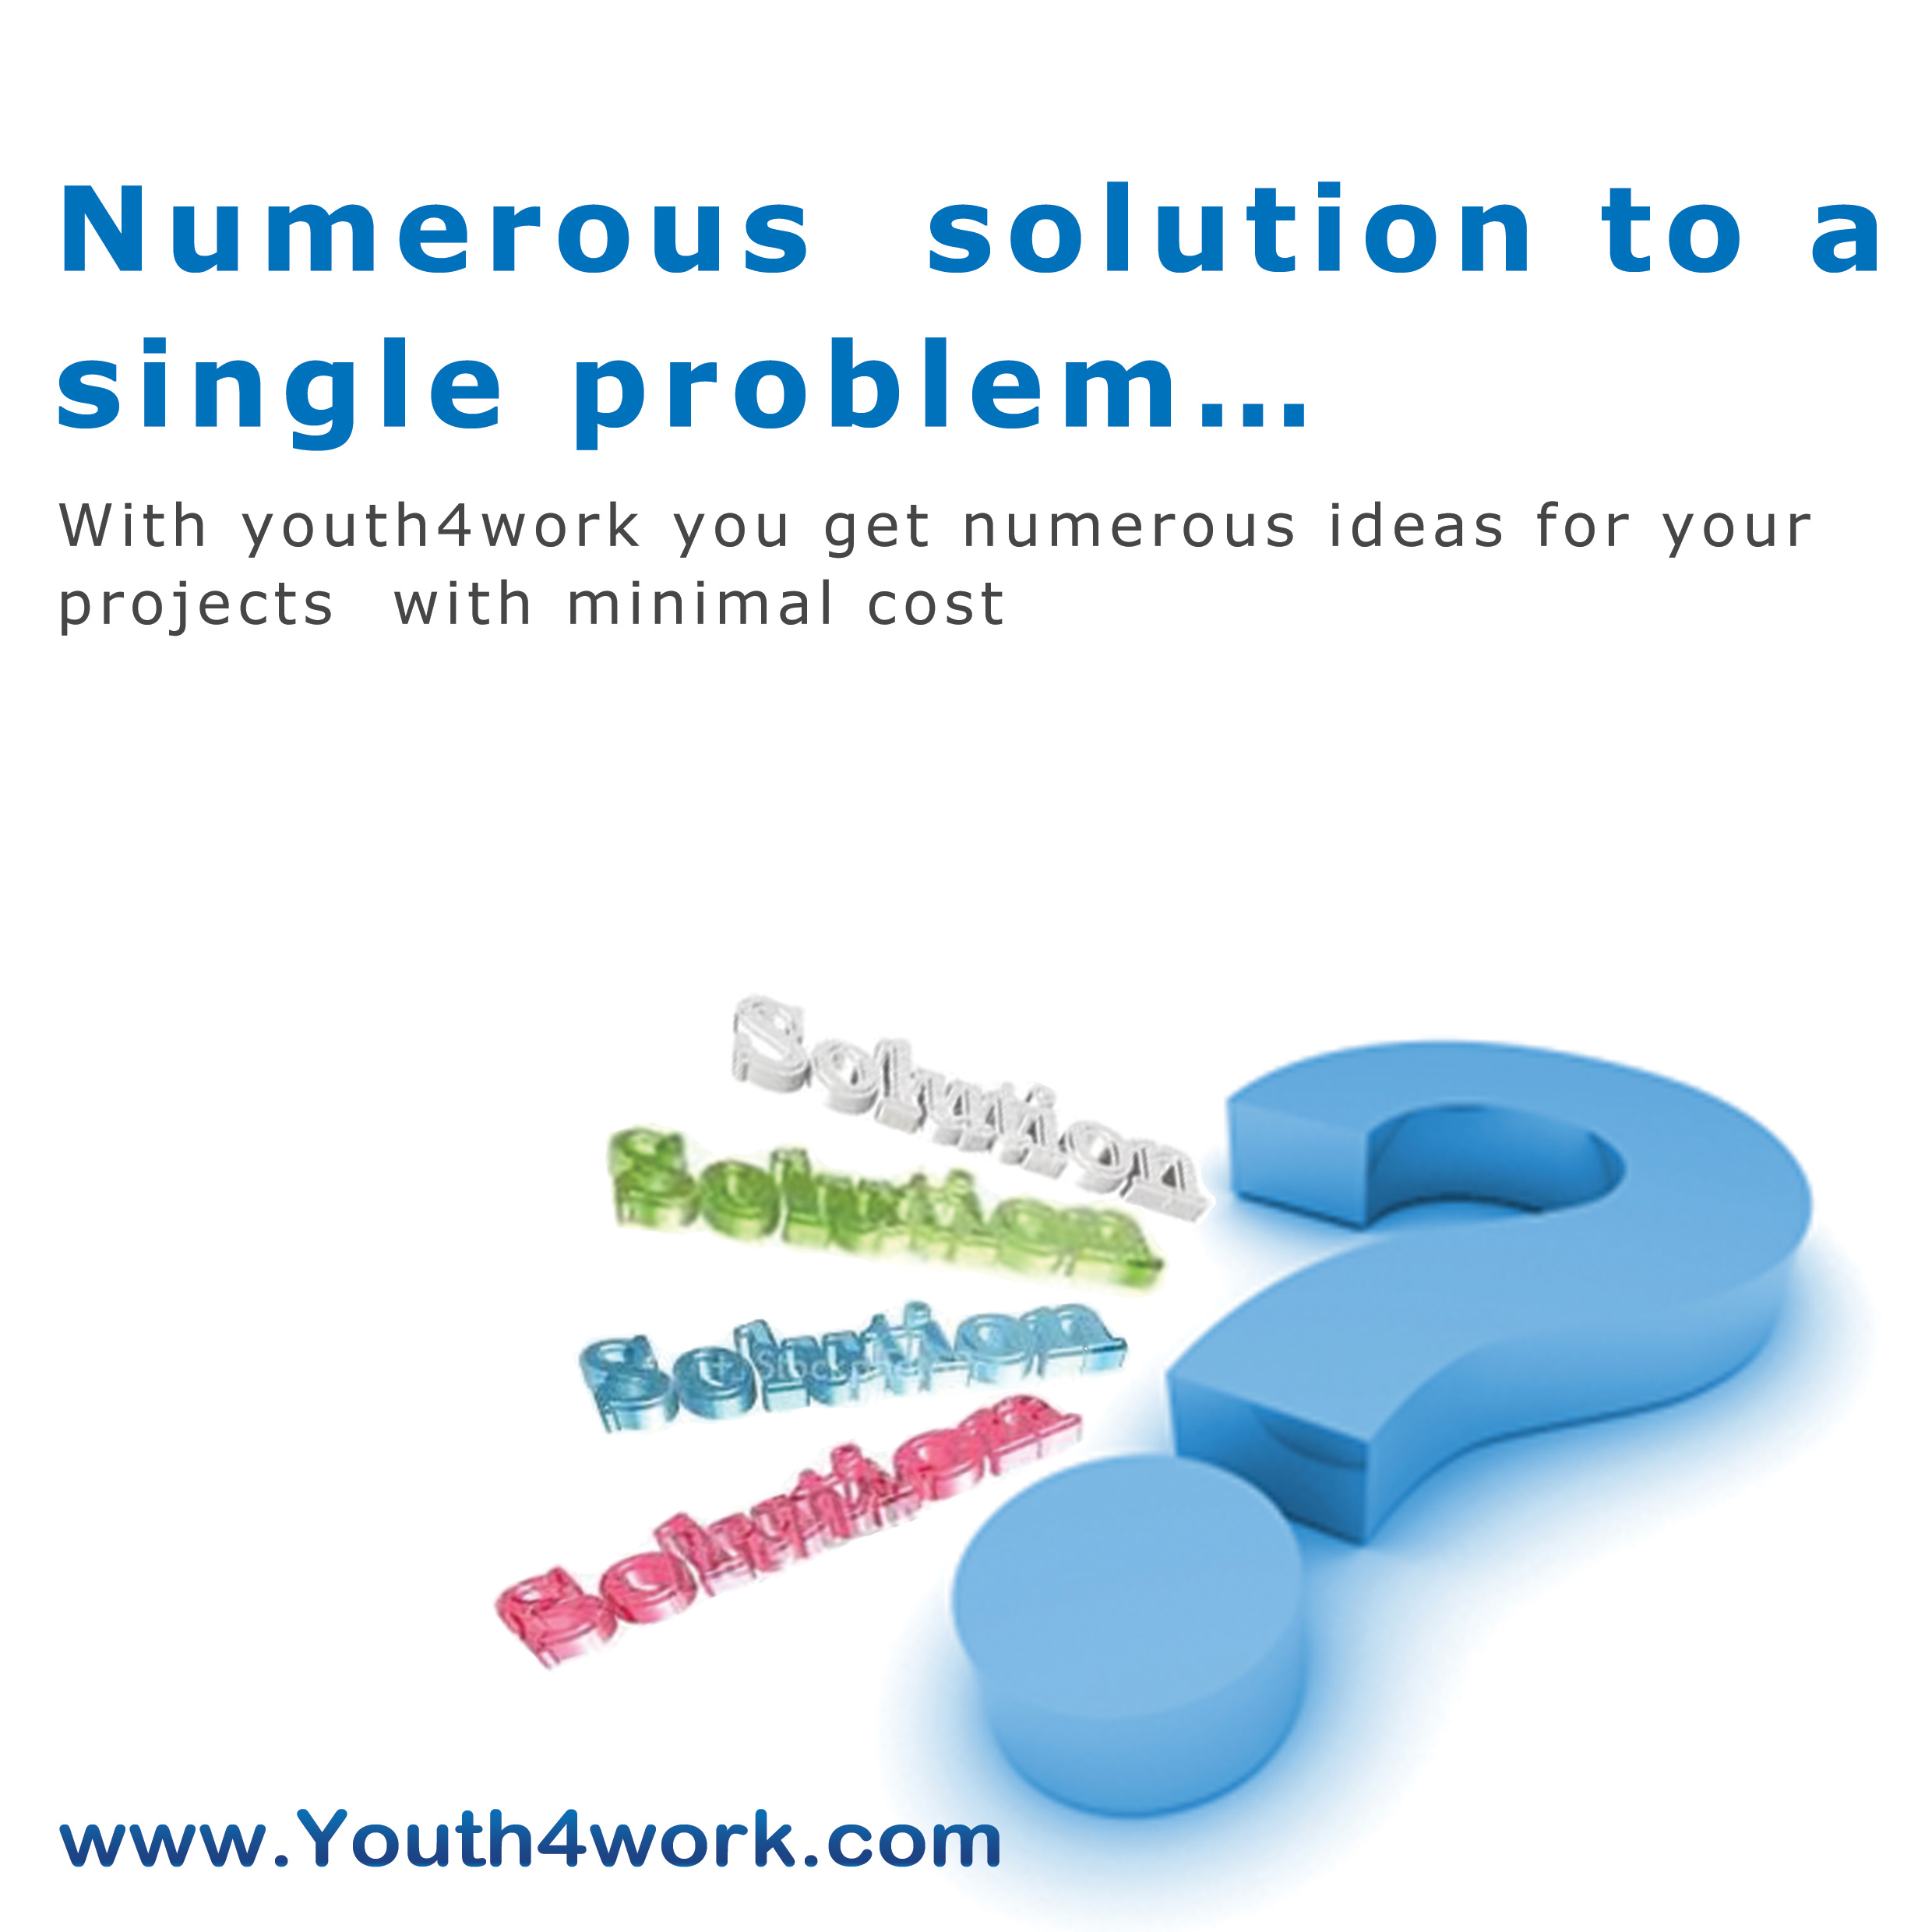 Numerous solution to a single problem